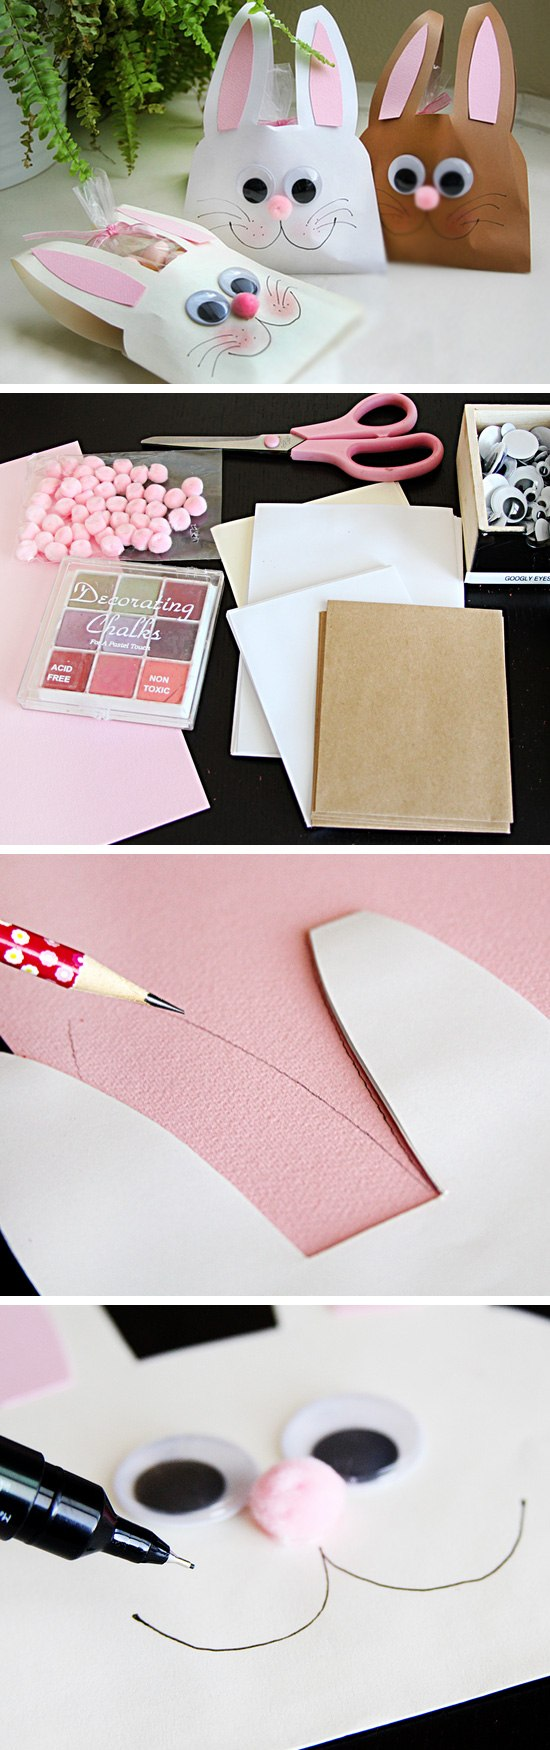 DIY Bunny Envelopes.